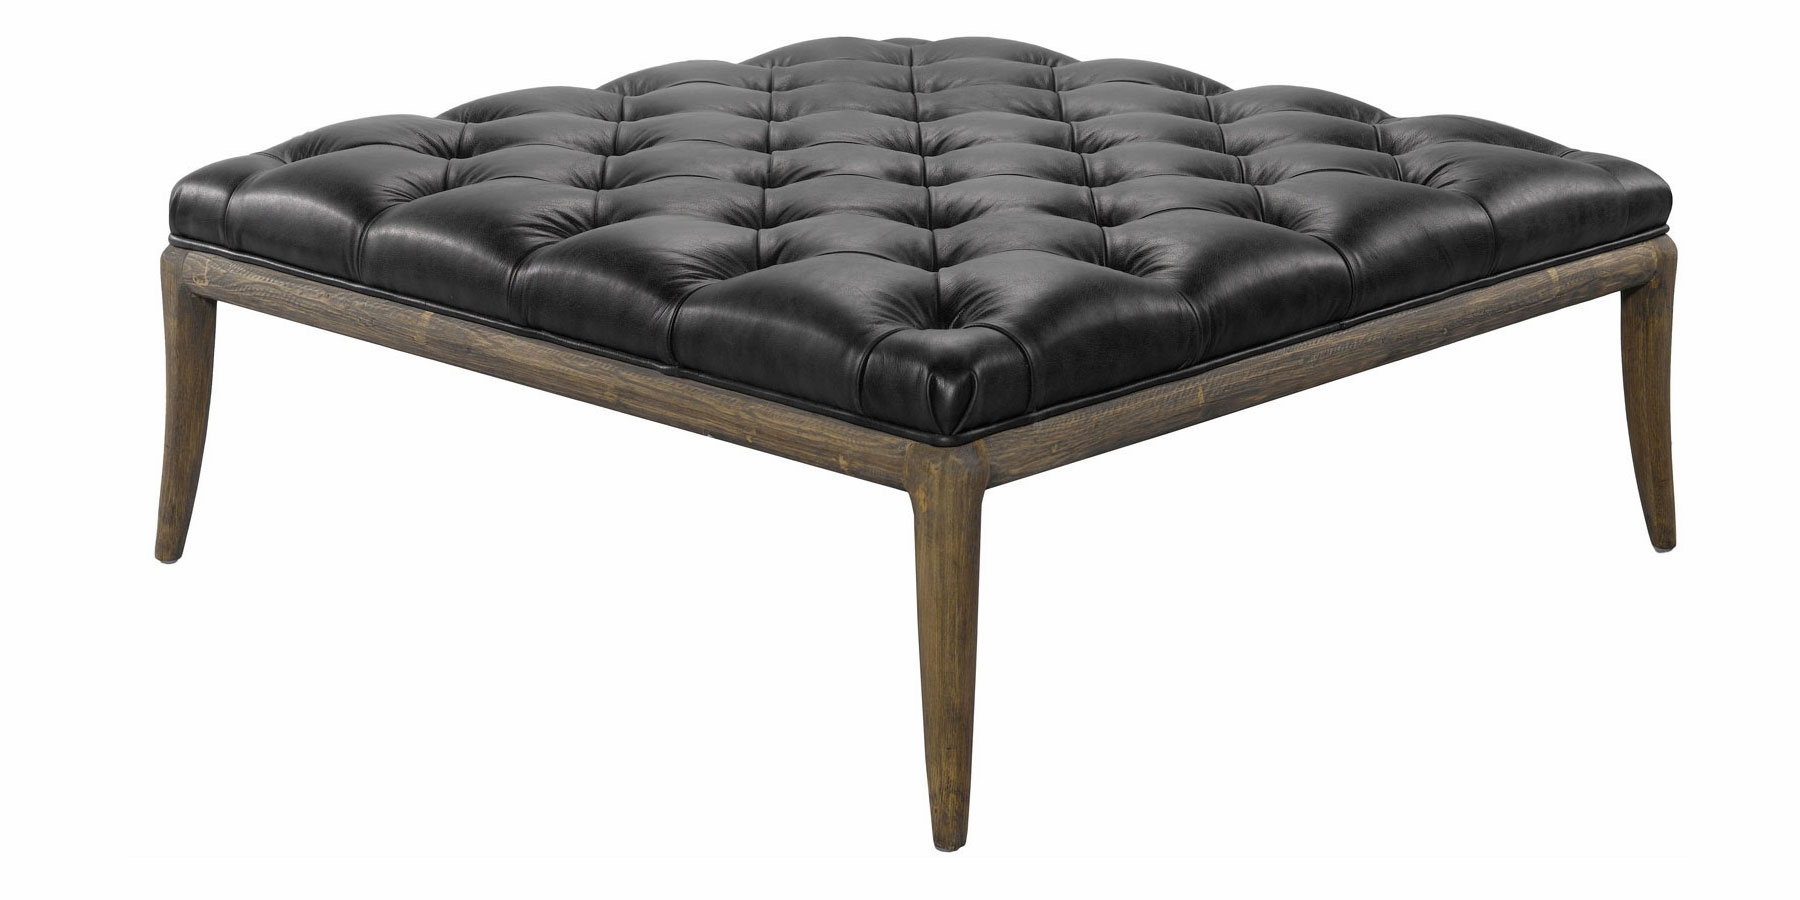 Titus Quick Ship Tufted Leather Coffee Table Ottoman